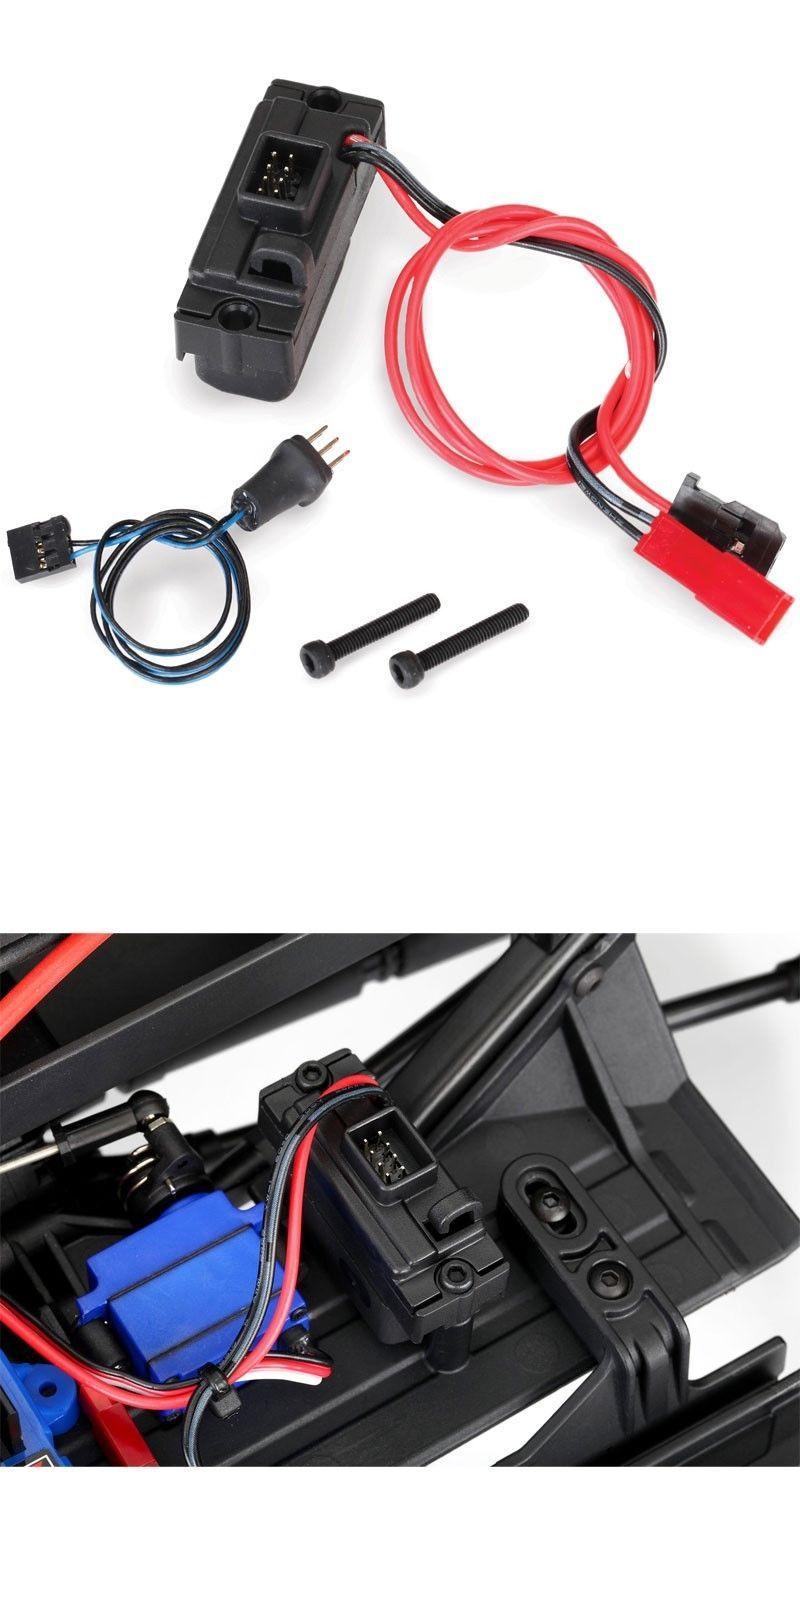 small resolution of lighting and lamps 182177 traxxas 8028 trx 4 power supply and wiring harness for led lights tra8028 buy it now only 19 95 on ebay